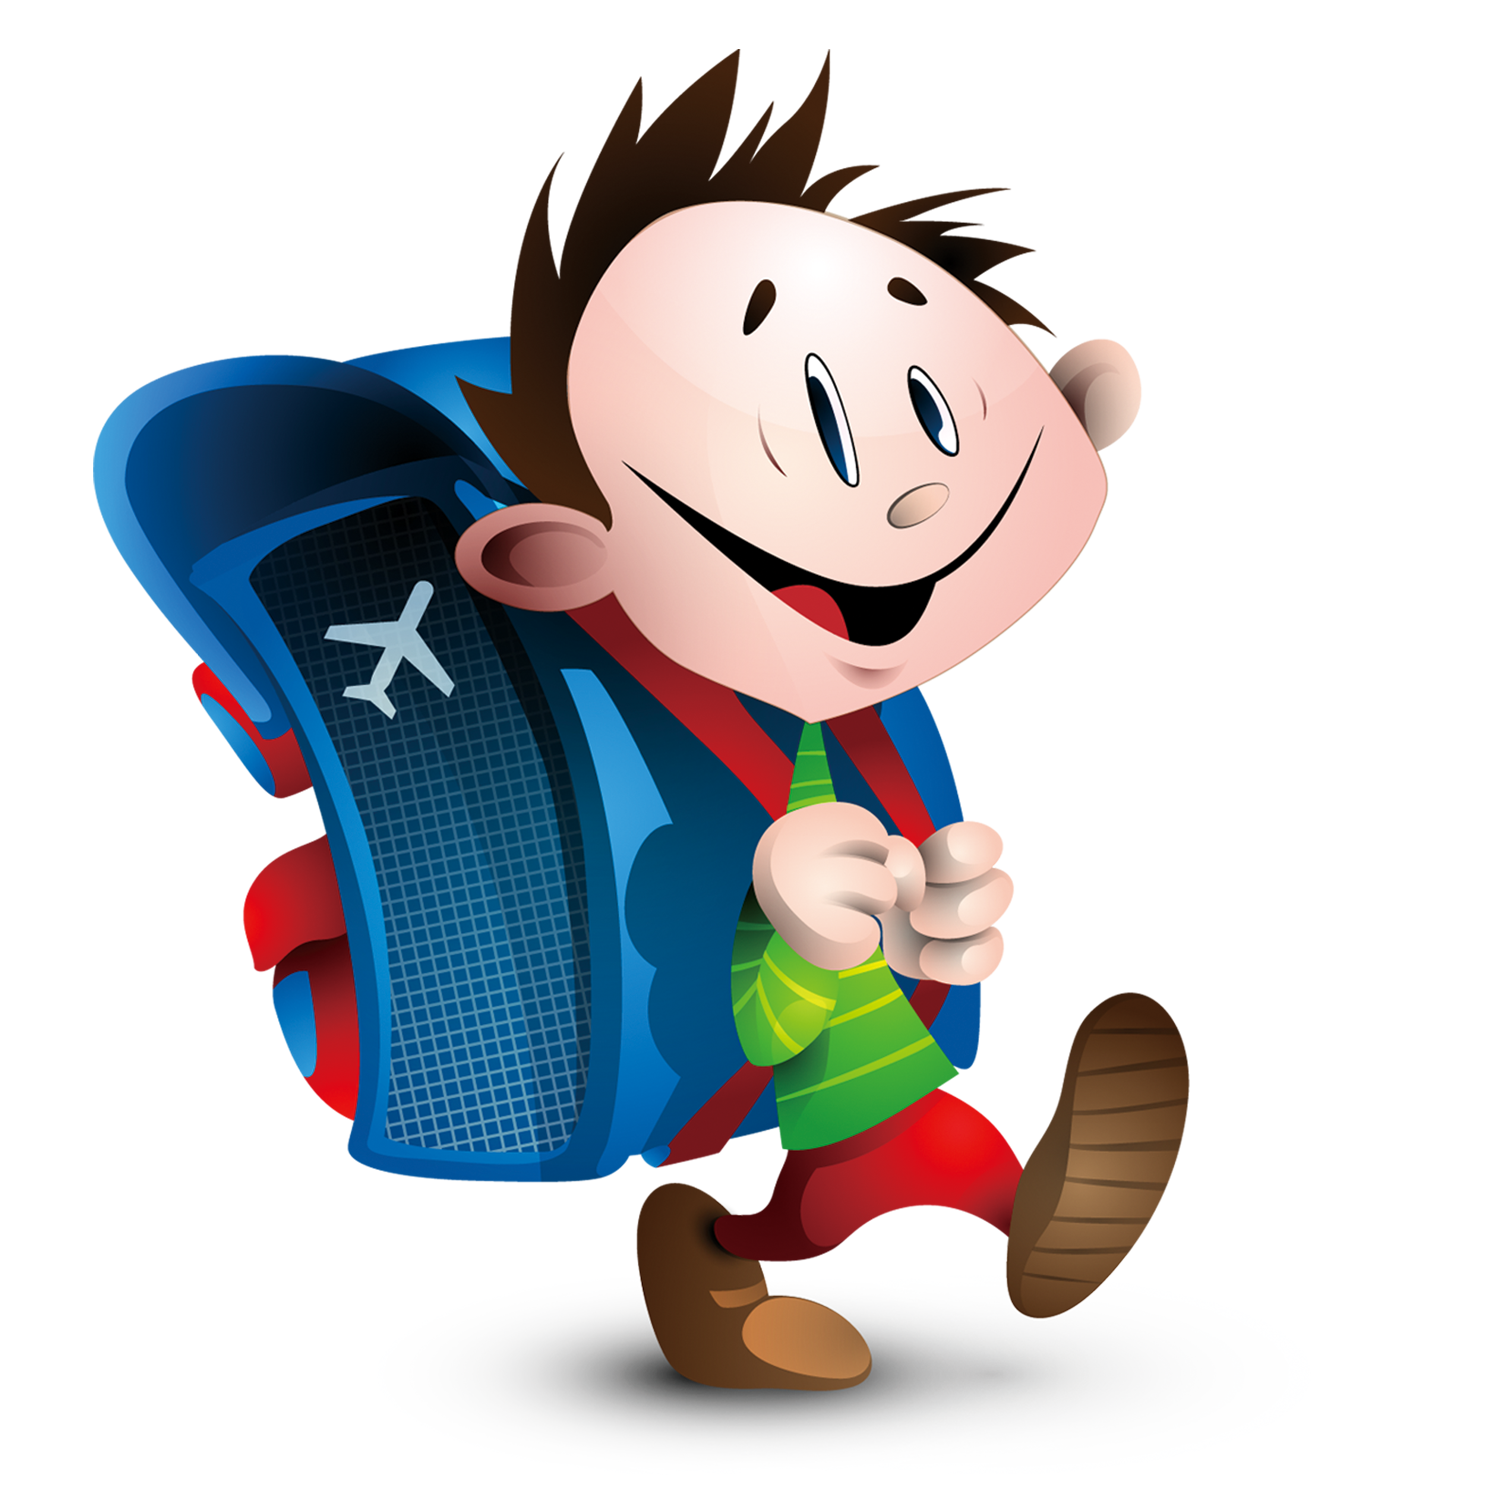 To go to school clipart freeuse download Student French Child School Clip art - Carrying a bag to go to ... freeuse download